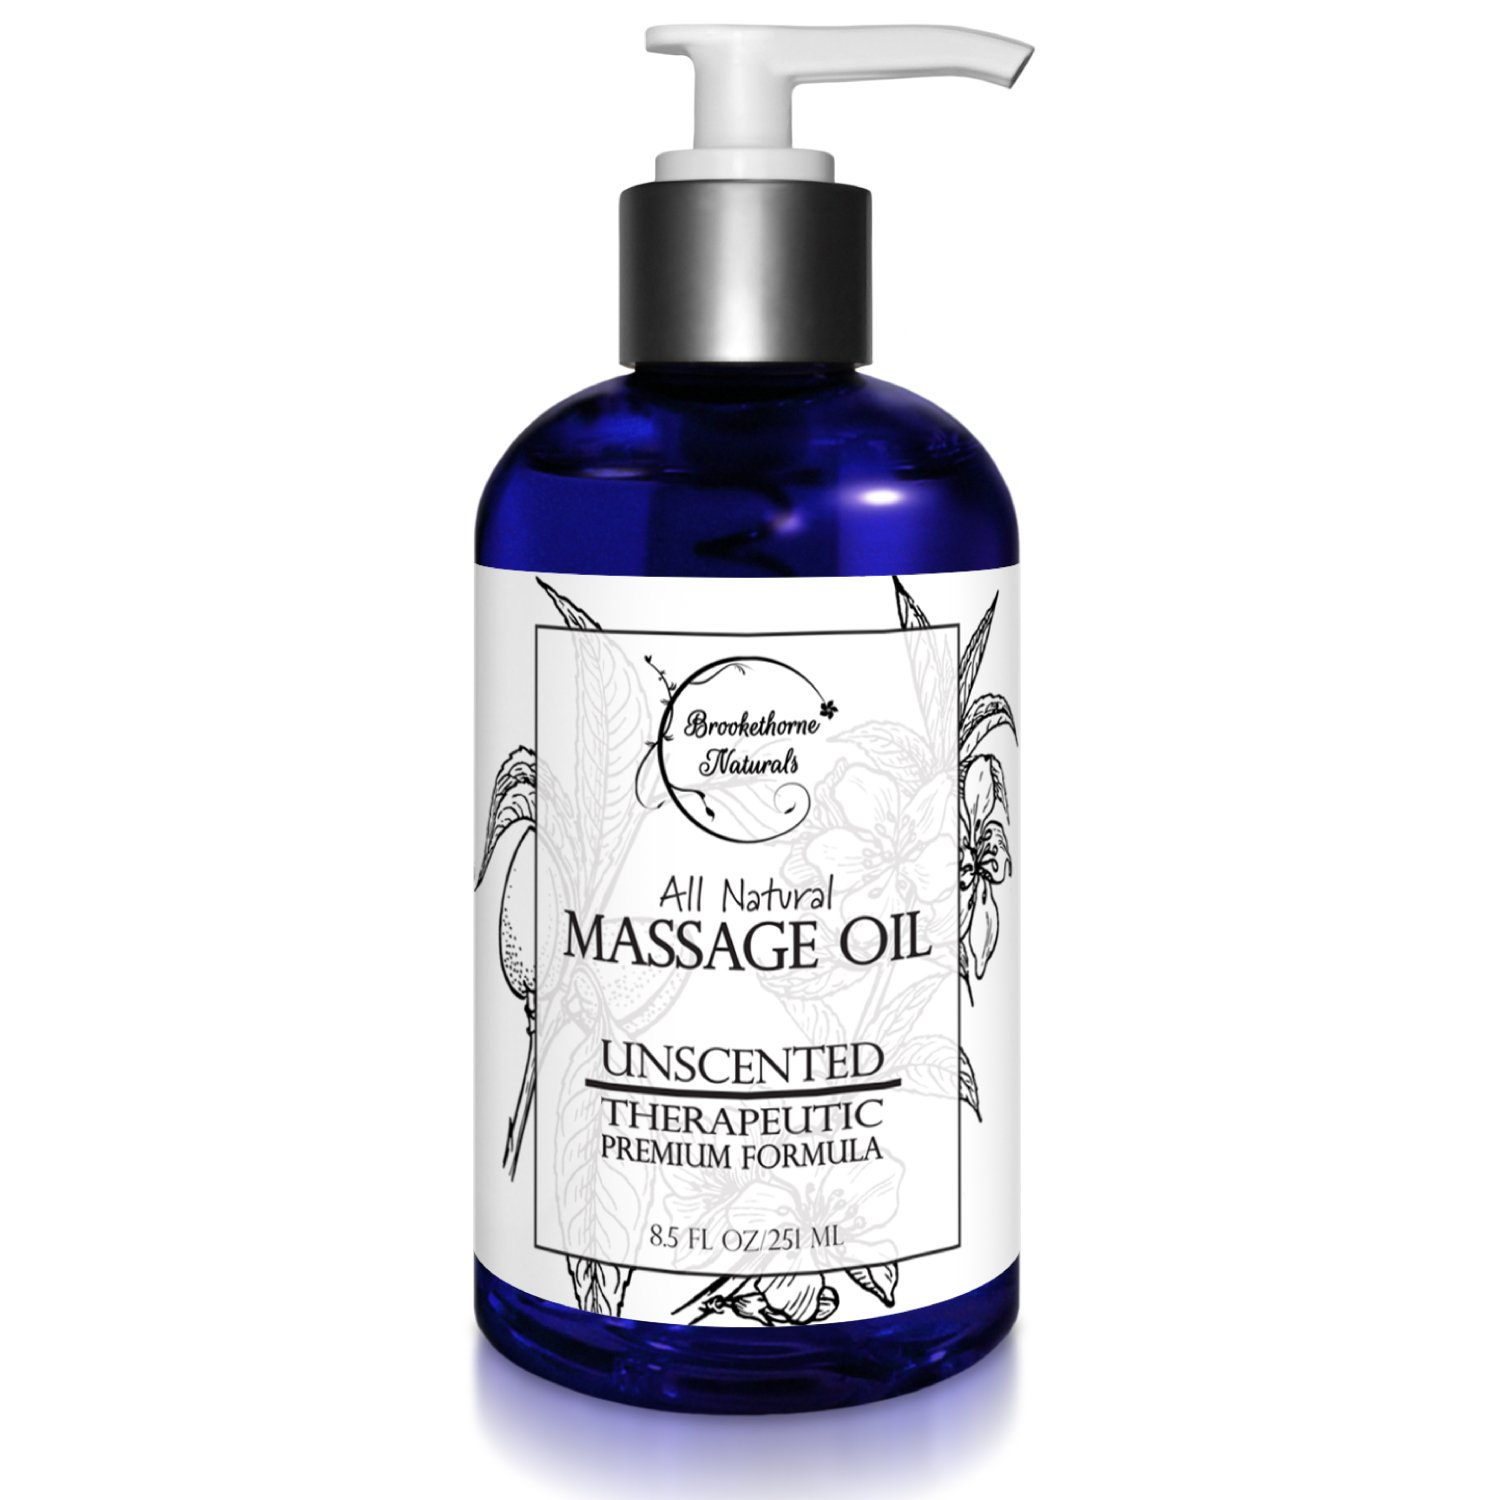 Almond Massage Oil - All Natural, Unscented Spa Quality Formula. Great for Massage Therapy, Body Massage & Therapeutic Massage - with Sweet Almond, Jojoba & Grapeseed Oils - 8.5oz by Brookethorne Naturals